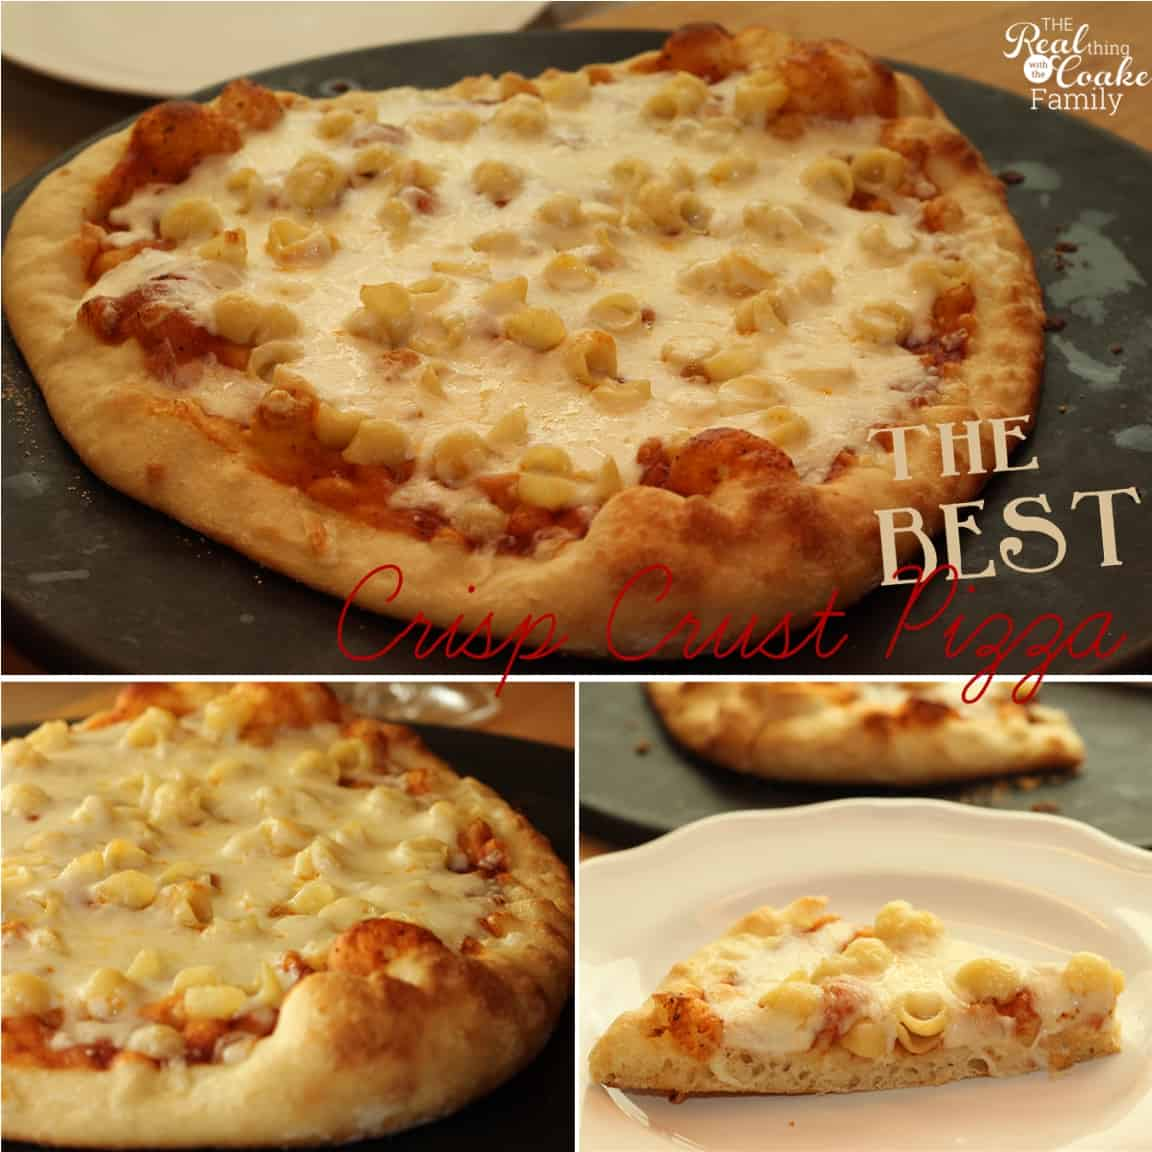 How to make pizza ~ The best way to make pizza at home so you get a delicious crisp crust. Yum...can't wait for dinner! #Recipe #Pizza #HowtoMakePizza #RealCoake